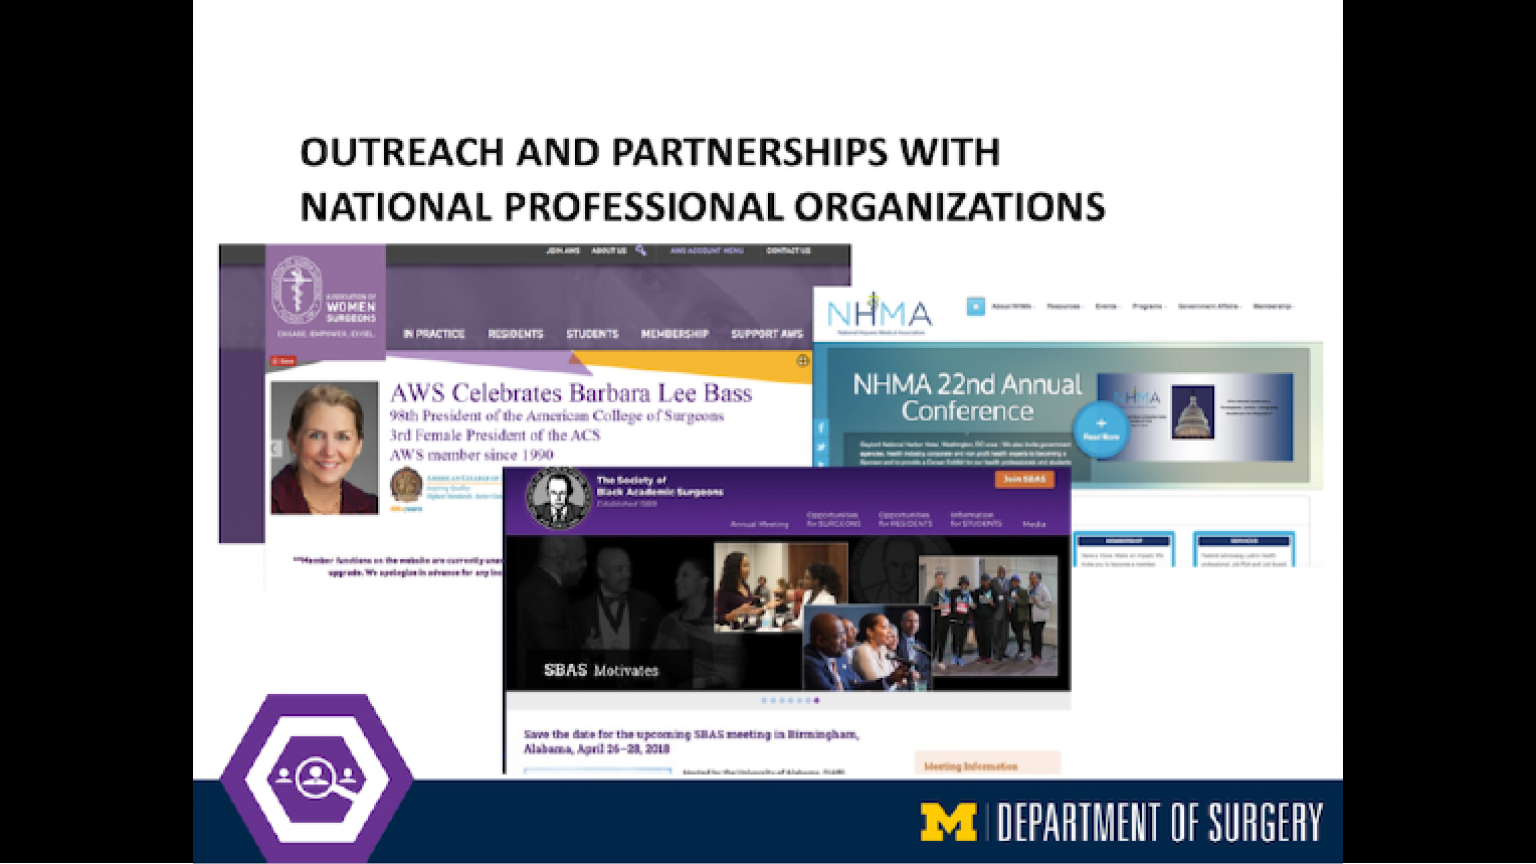 """Outreach and Partnerships with National Professional Organizations - thirty-eighth slide of """"This Is What We Stand For"""" presentation"""